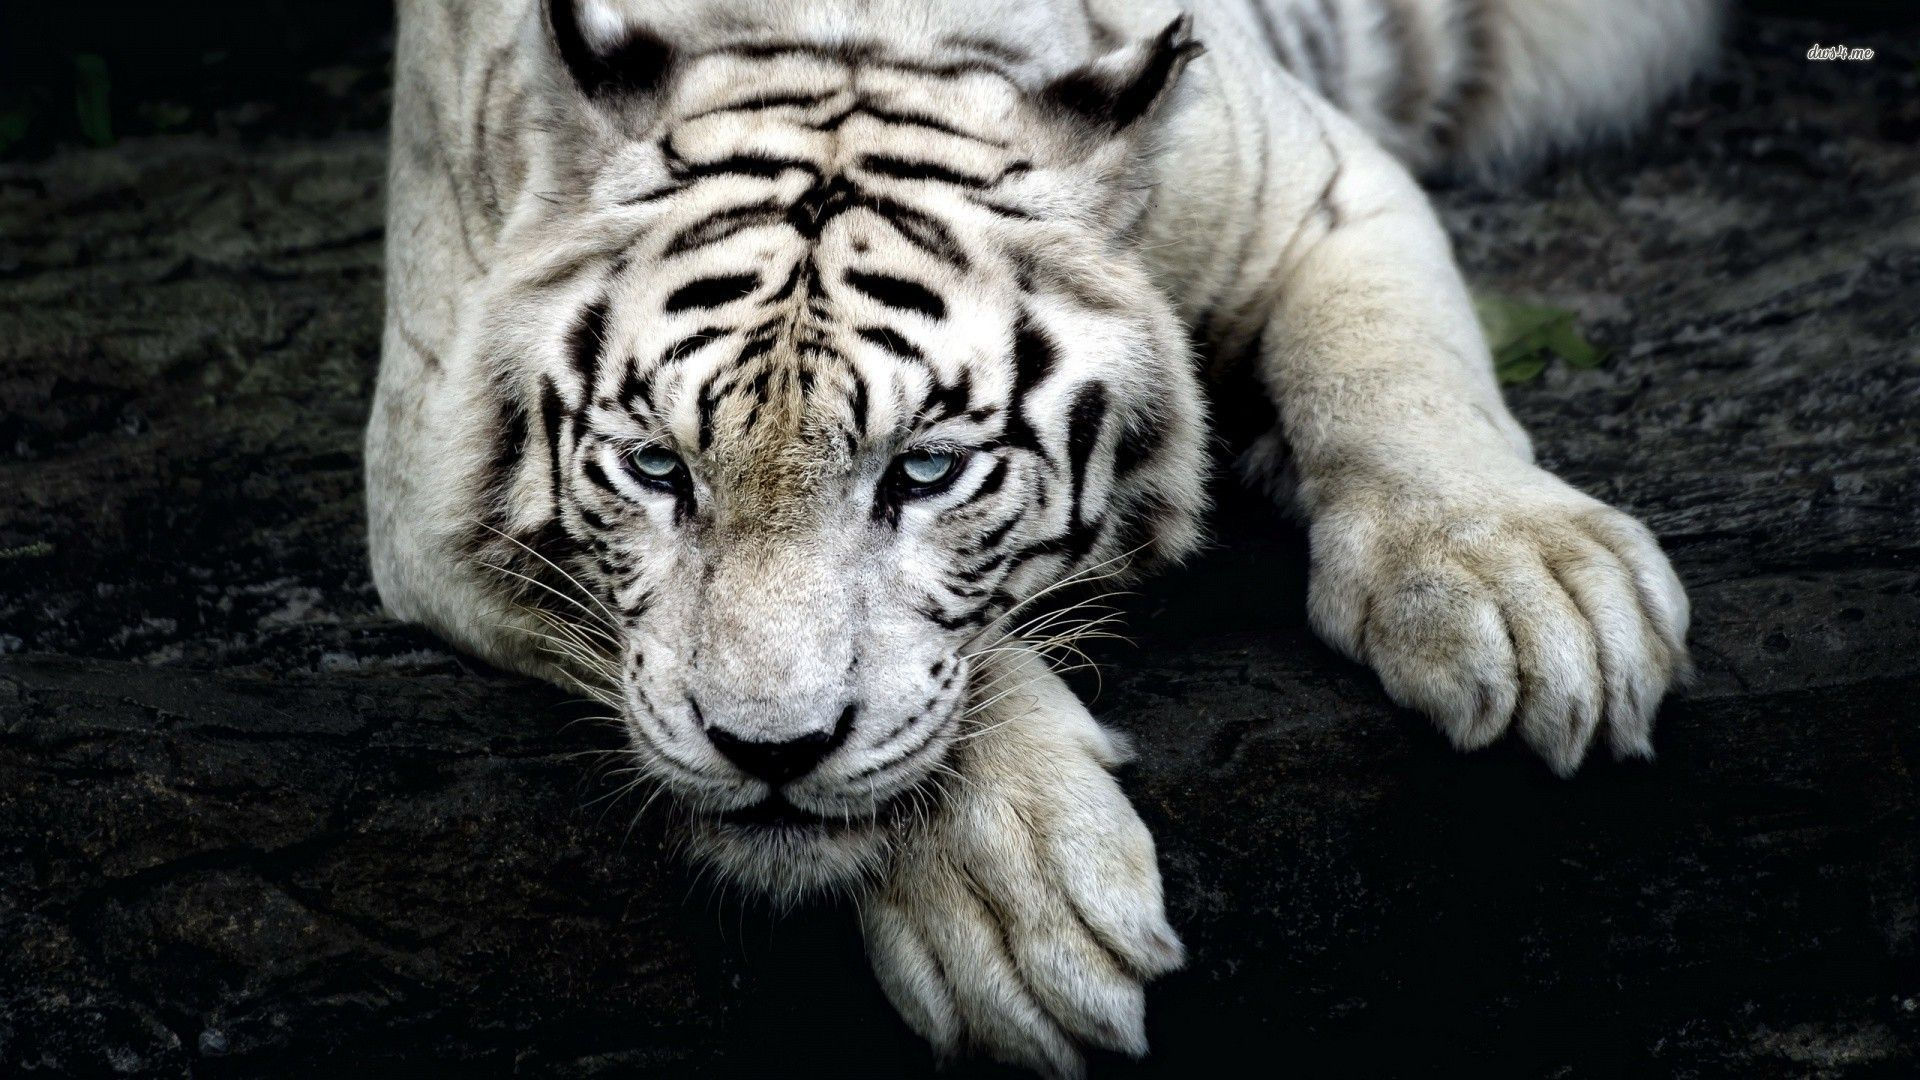 white tiger hd desktop wallpaper widescreen high definition 1920